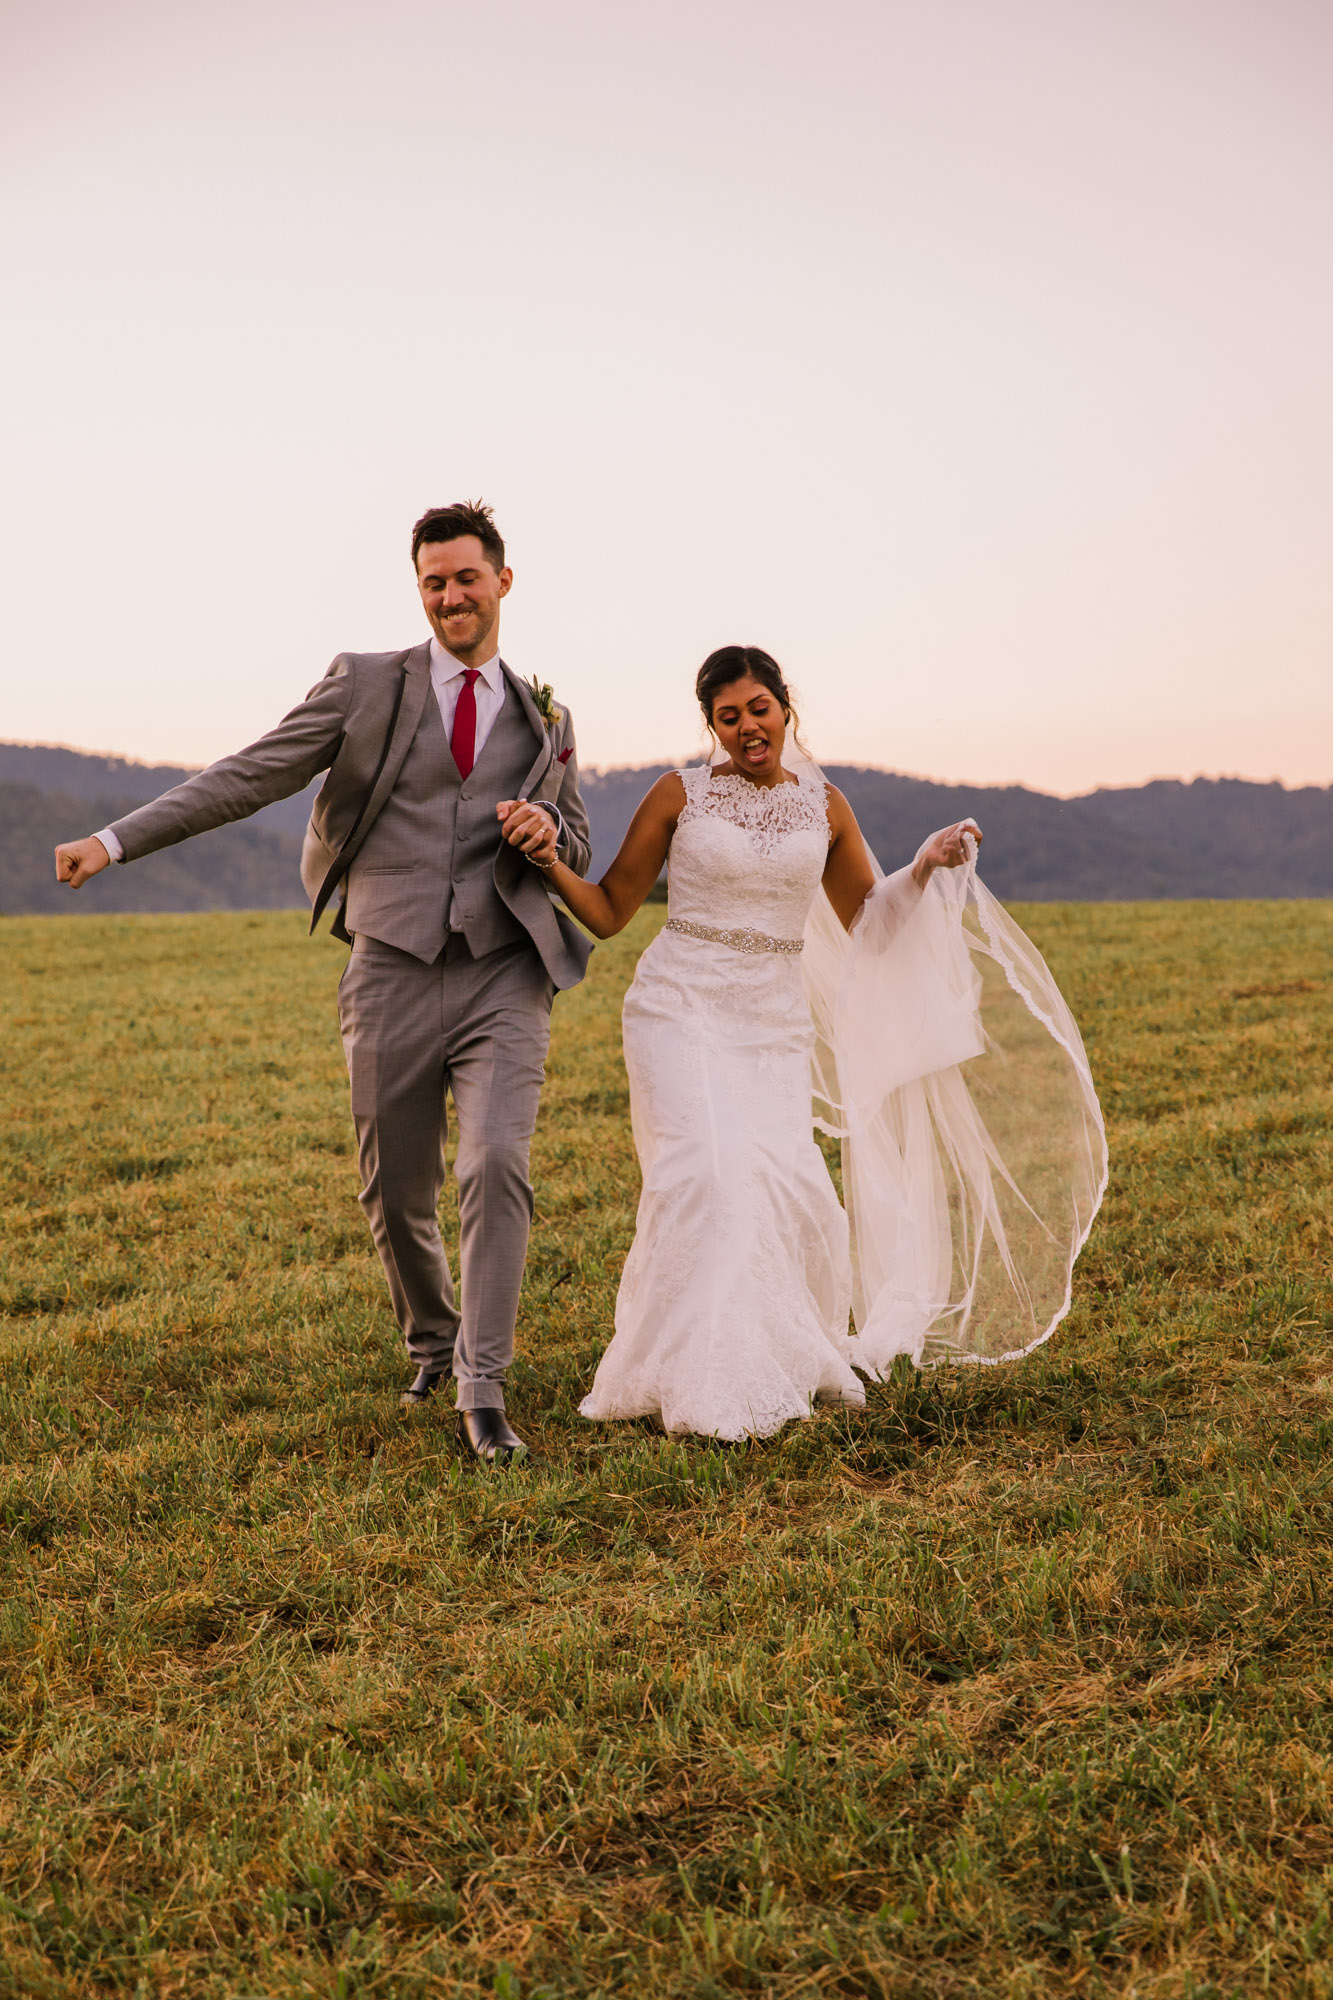 Waynesville NC Wedding Photography | Bride and Groom Grooving and Dancing in the Field